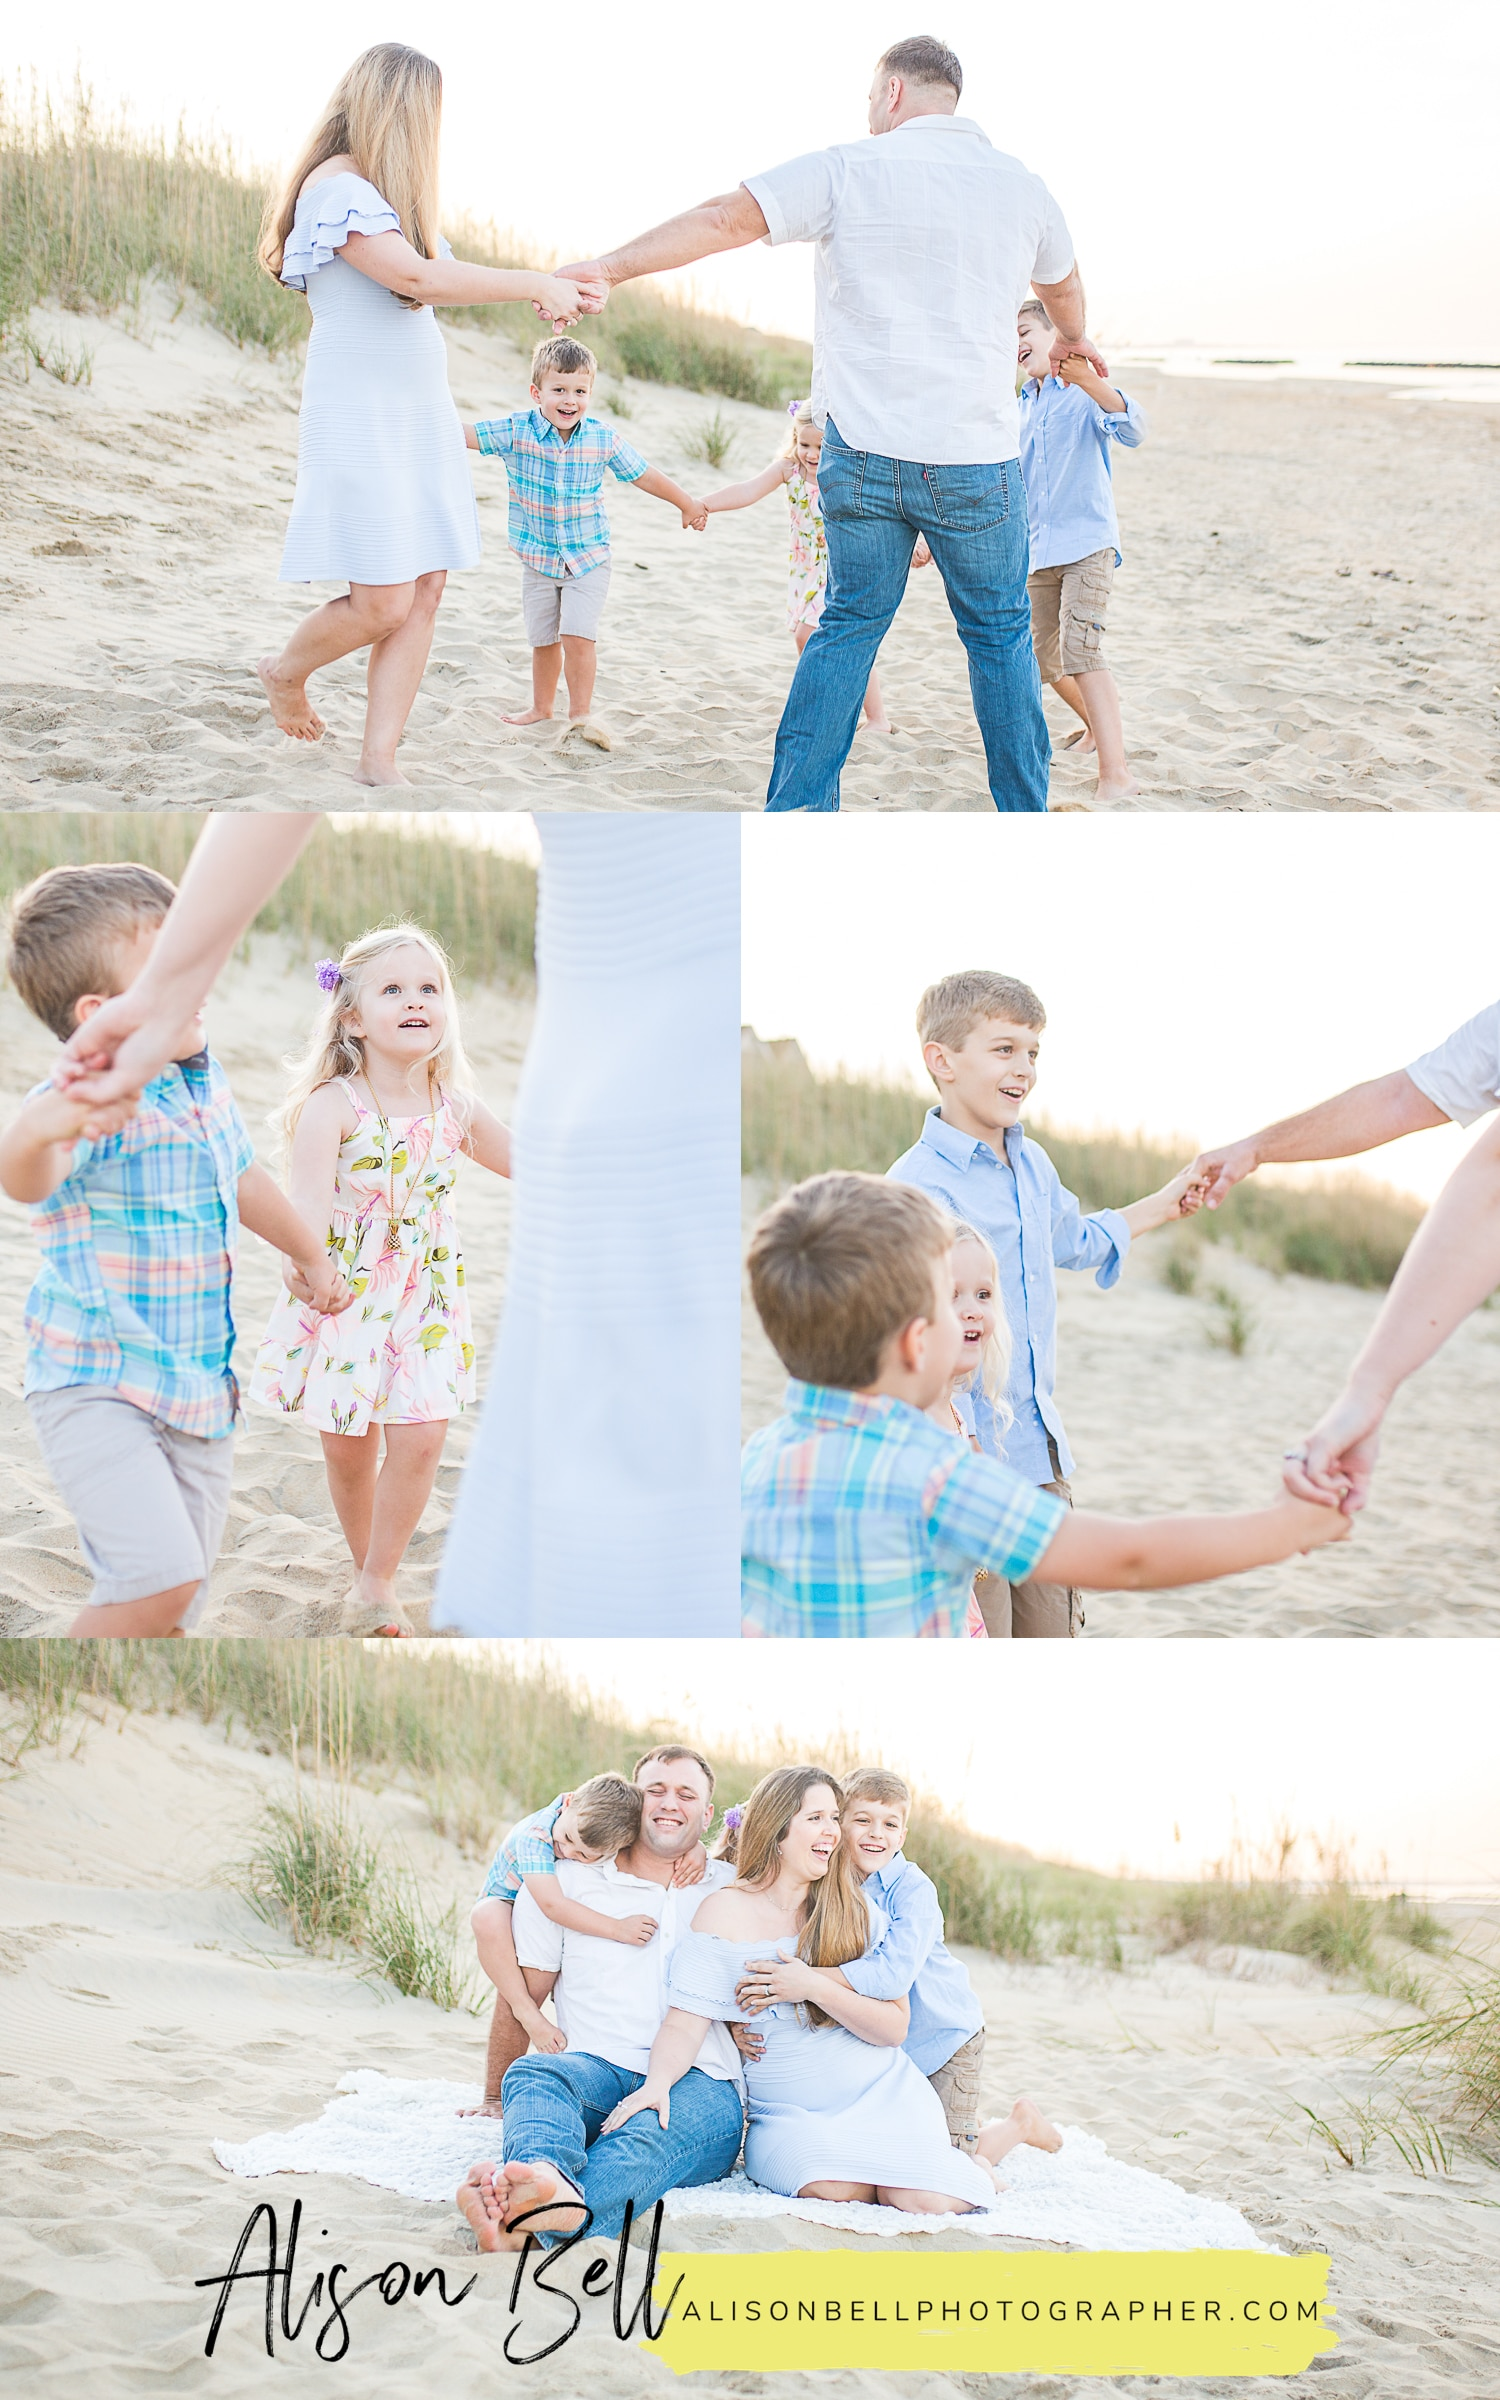 East beach Norfolk mini family photo session by alison bell photographer